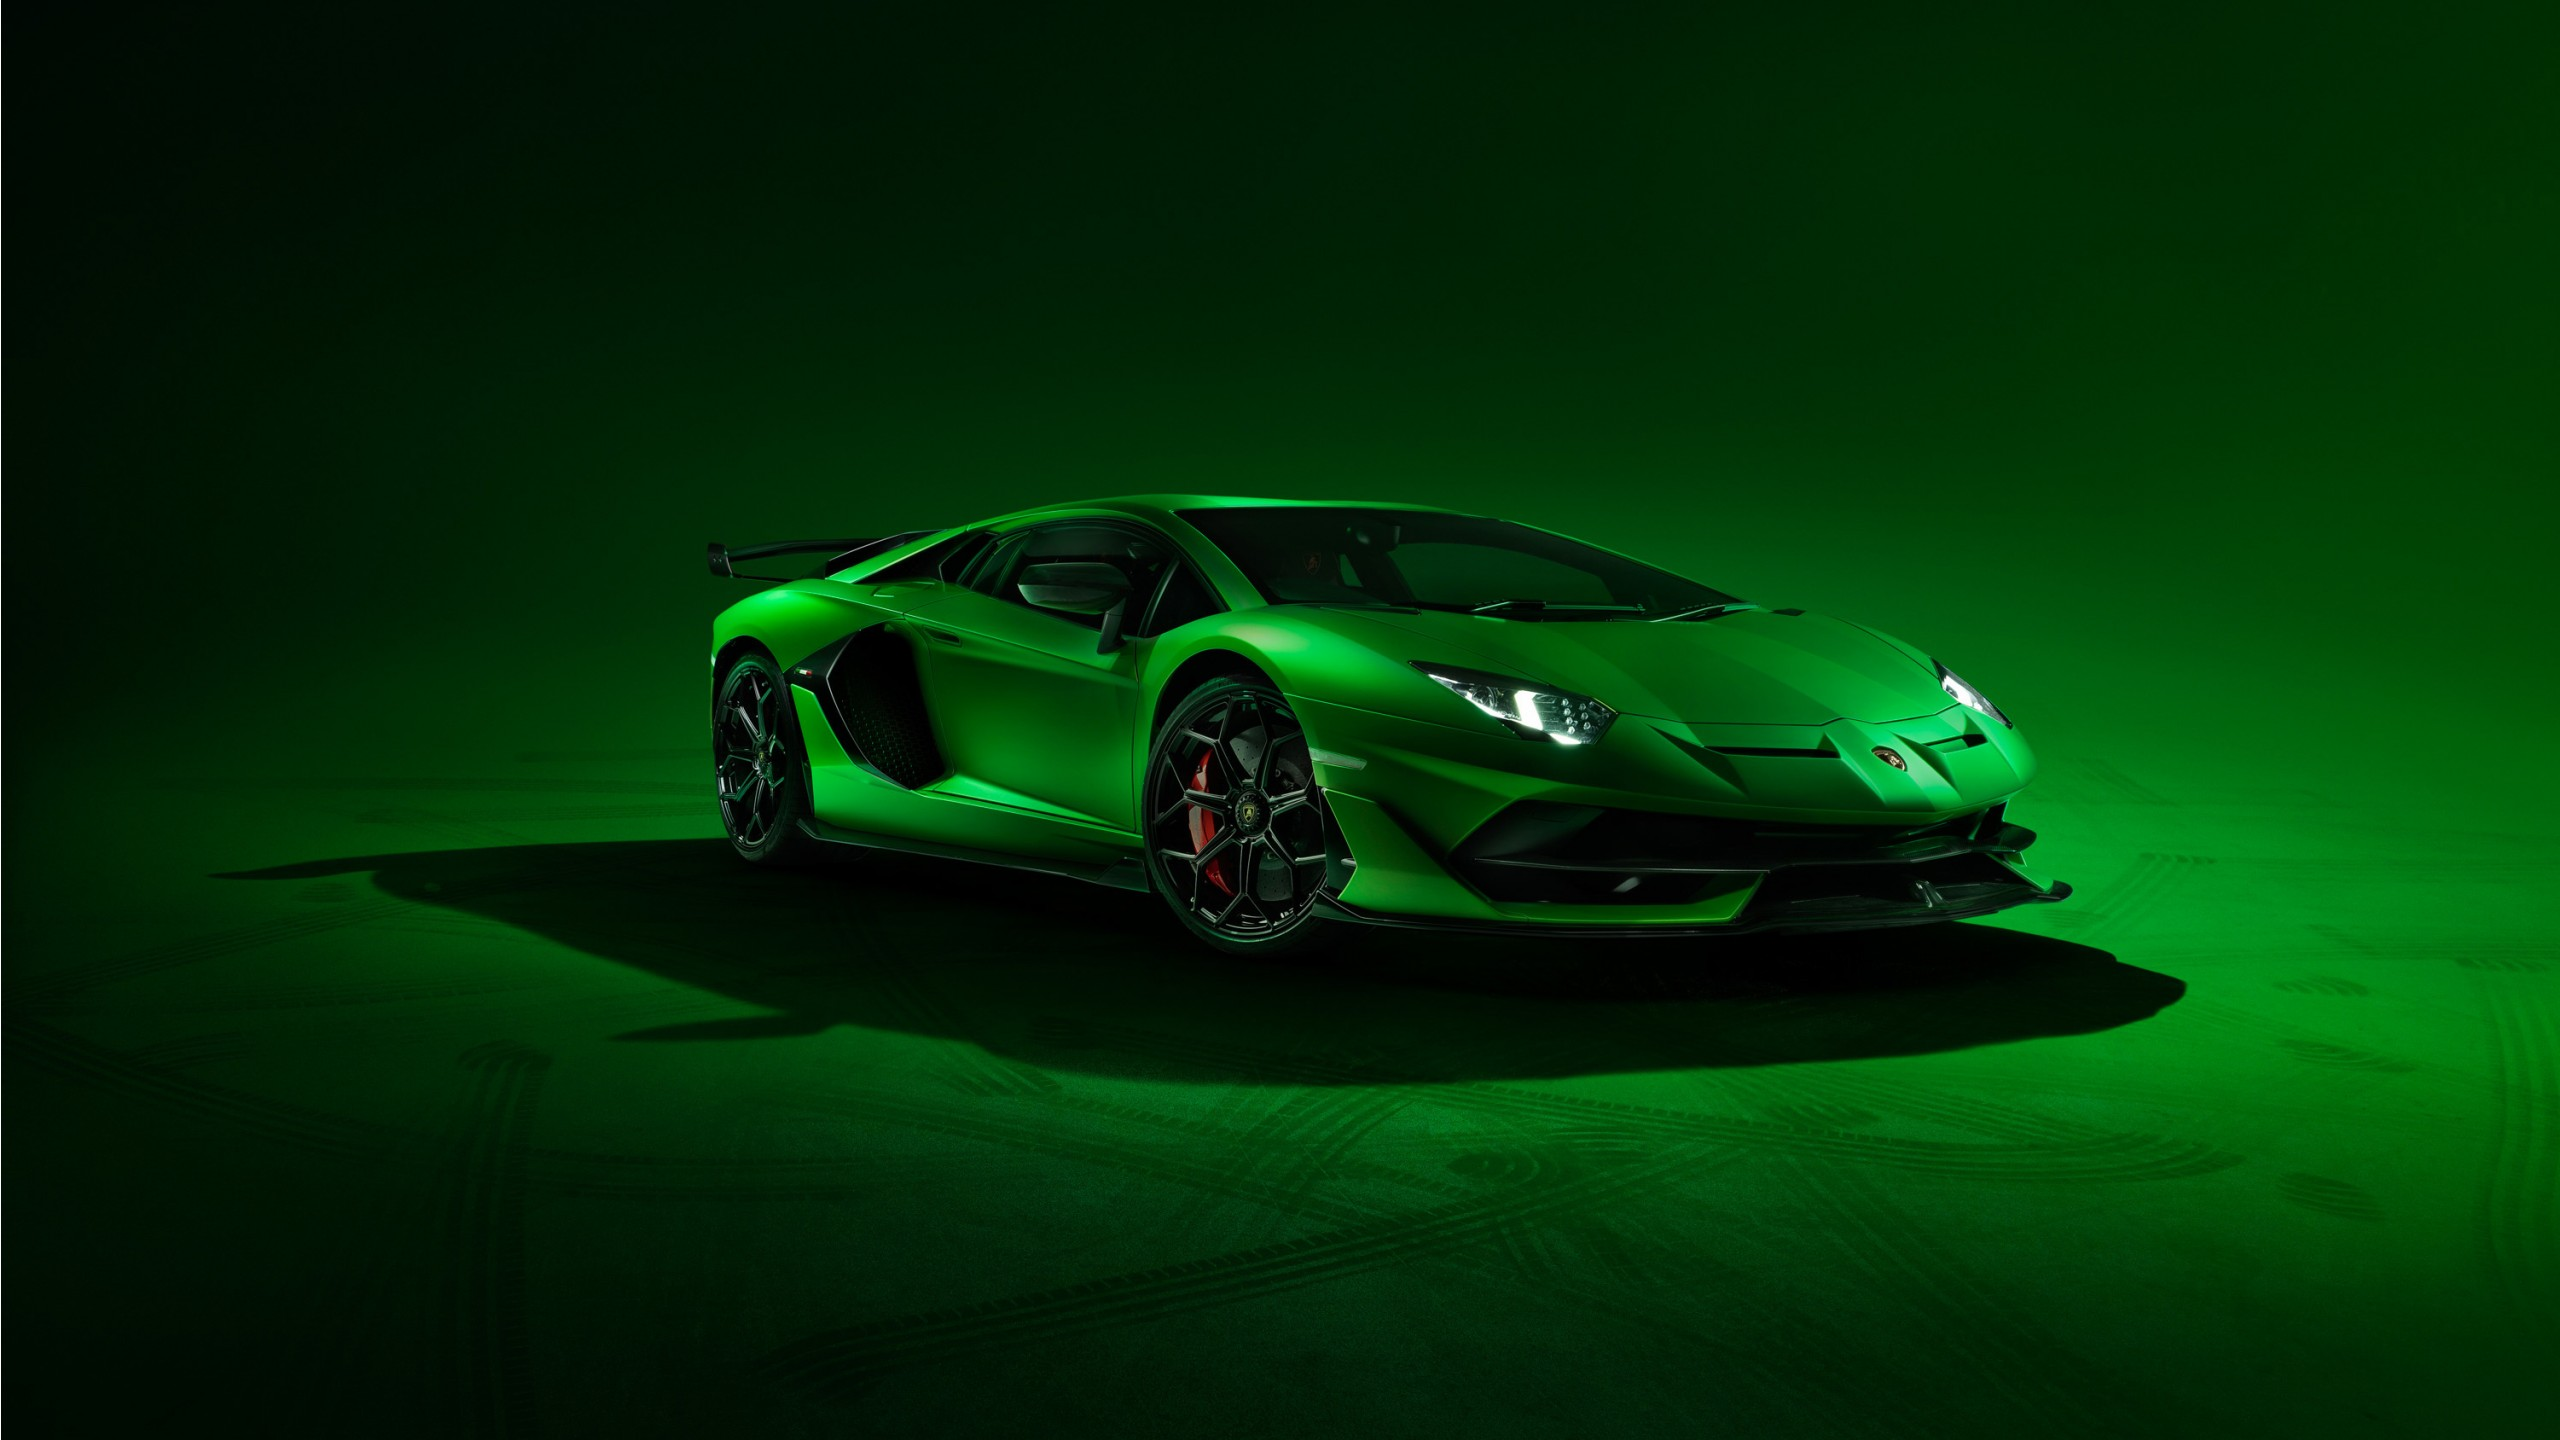 Top Hd Wallpapers Cars Wallpapers Desktop Hd: 2019 Lamborghini Aventador SVJ Wallpaper